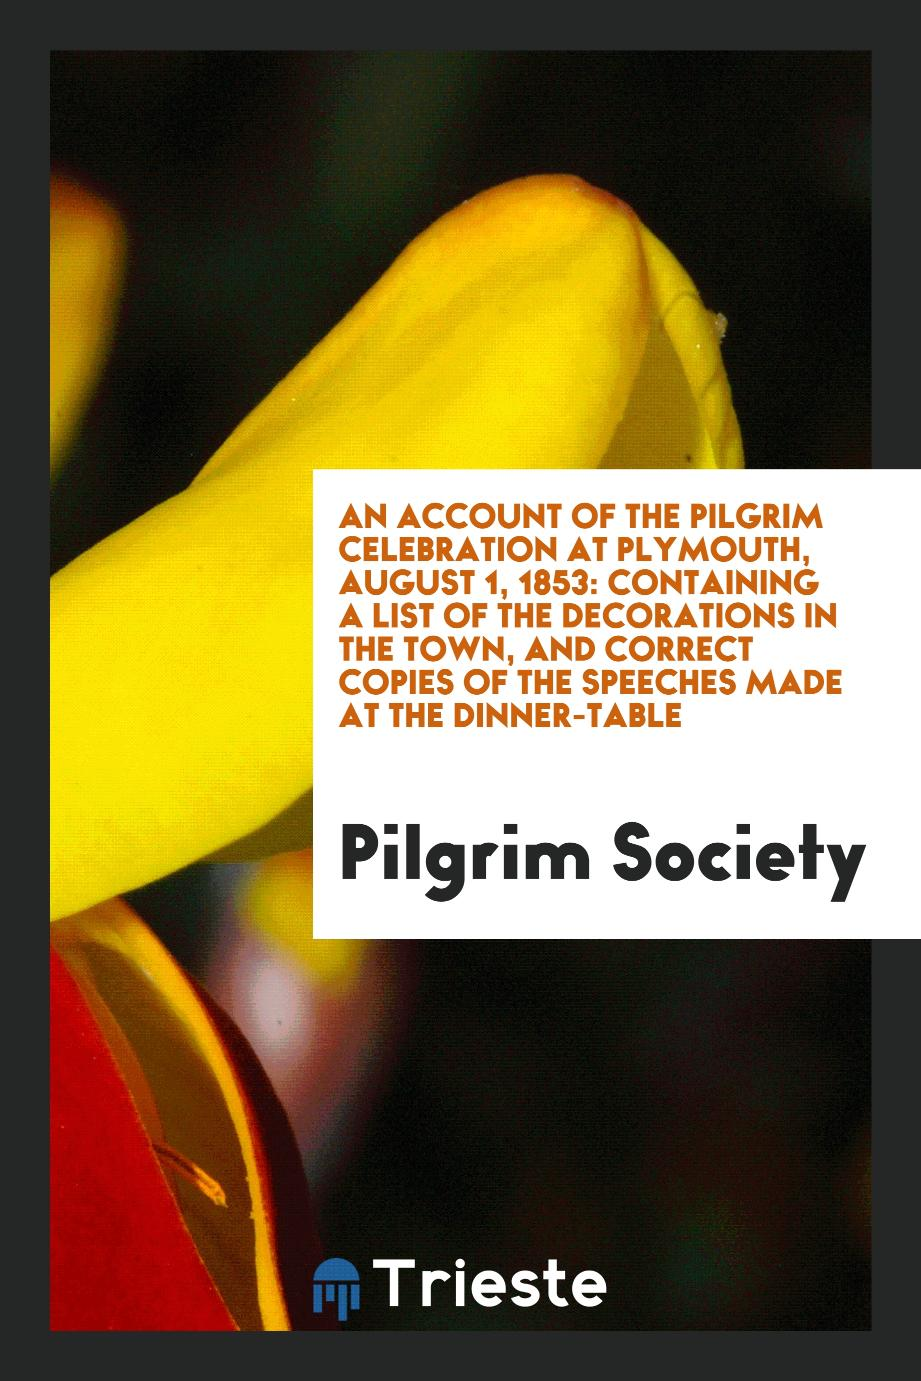 An Account of the Pilgrim Celebration at Plymouth, August 1, 1853: Containing a List of the Decorations in the Town, and Correct Copies of the Speeches Made at the Dinner-Table